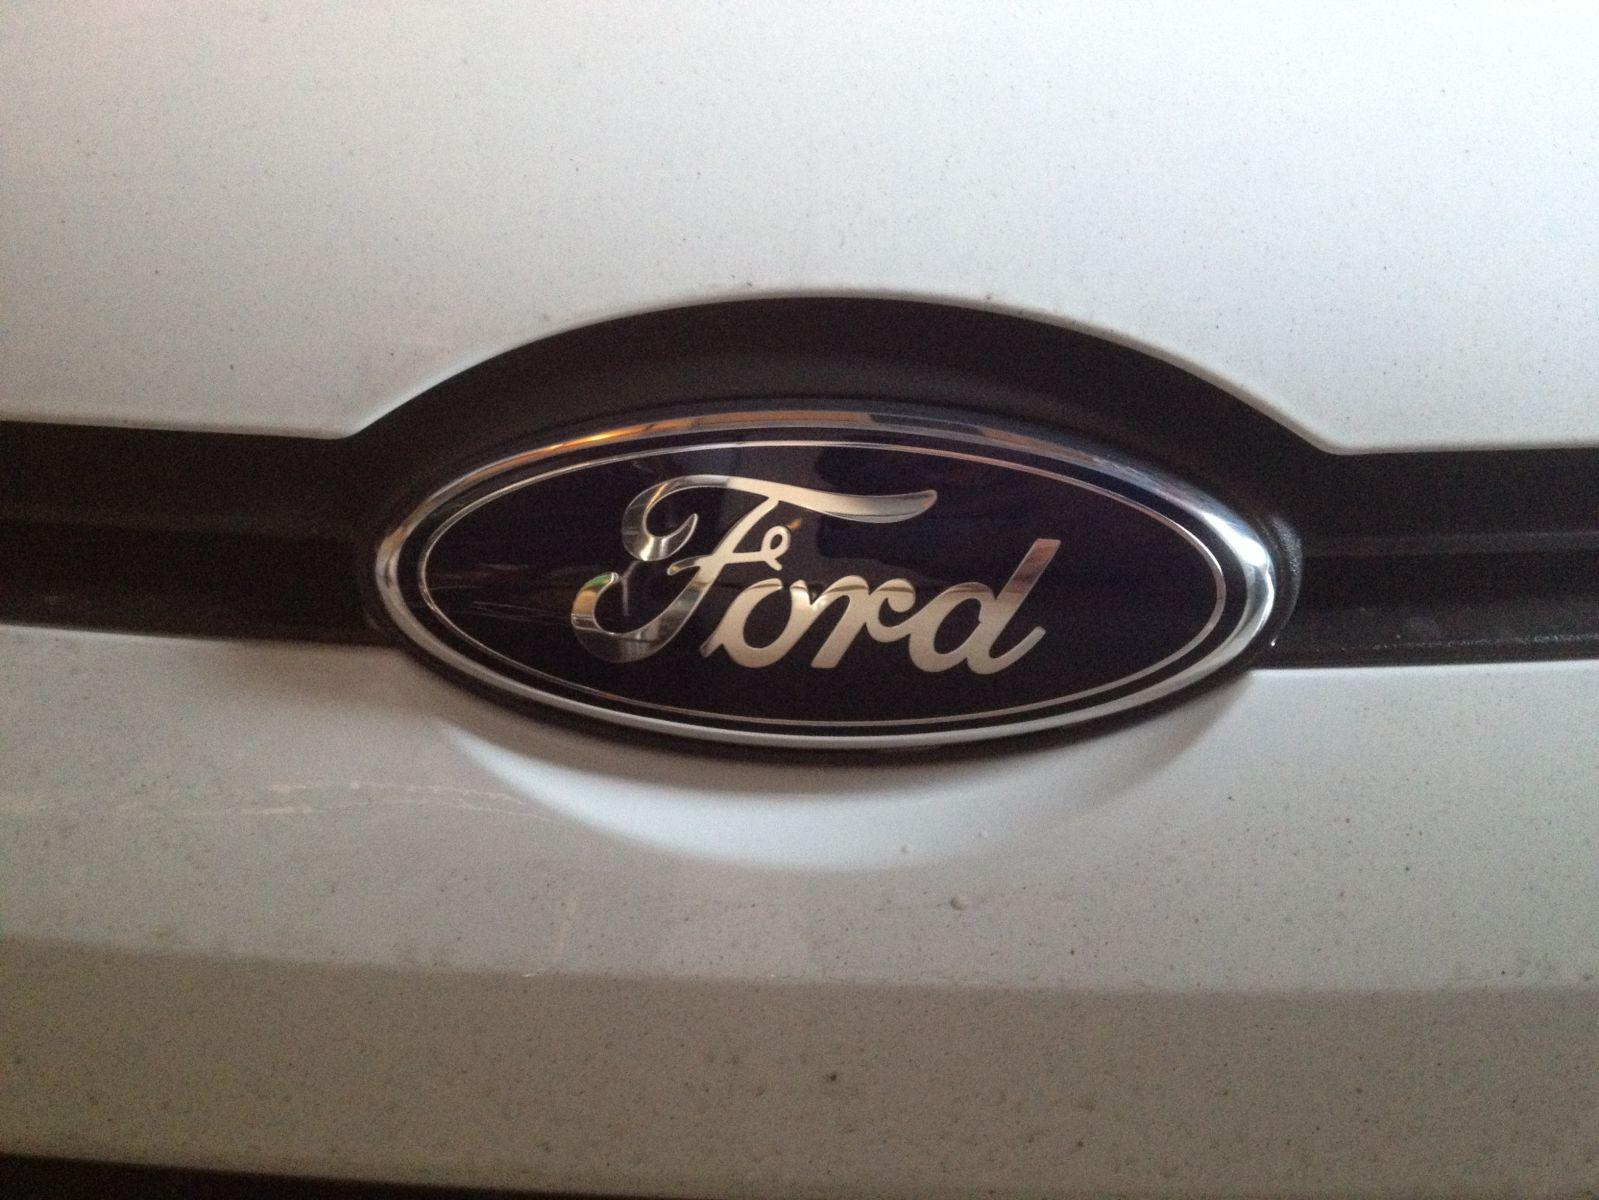 Ford Badge before....